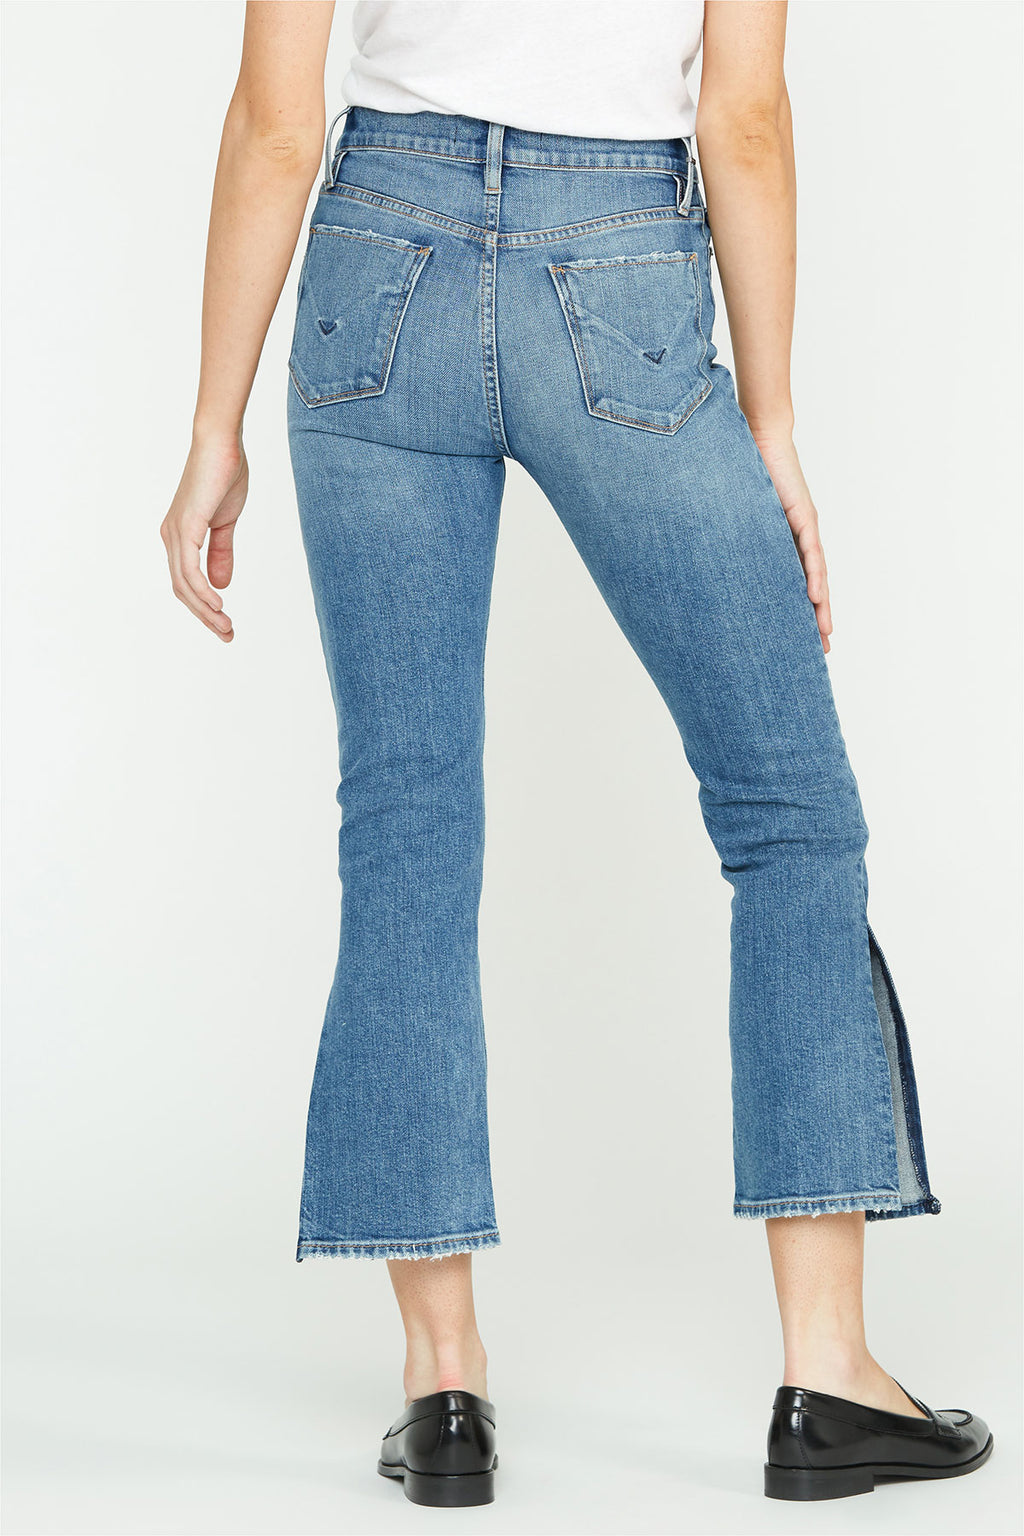 Holly High-Rise Side Slit Straight Crop Jean - hudsonjeans